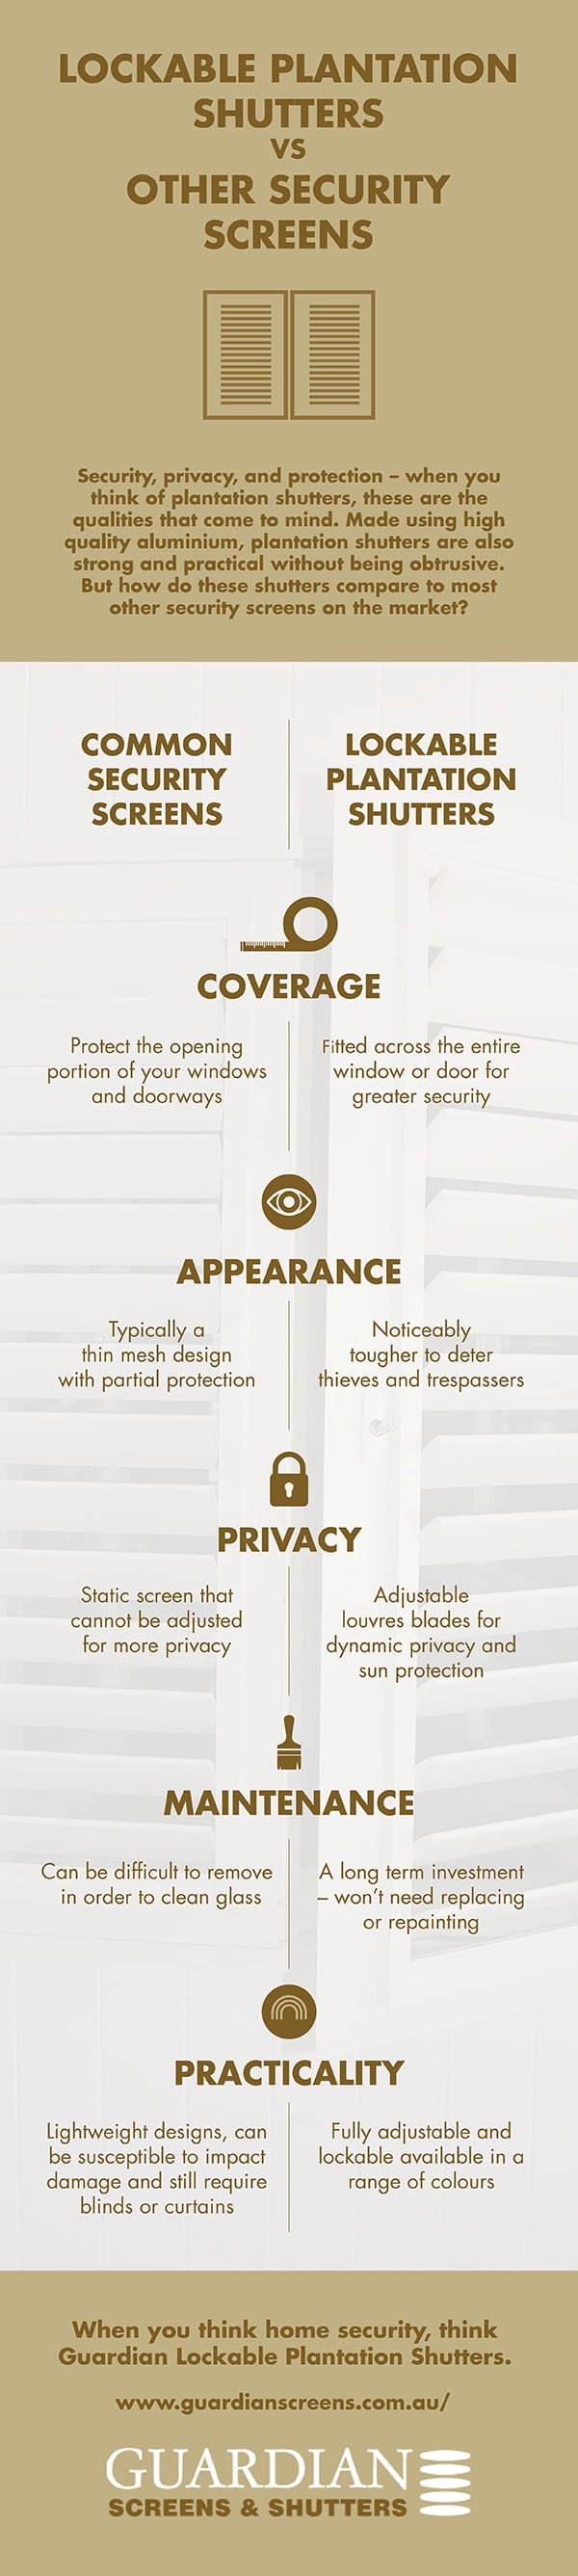 Diagram image explaining difference between lockable plantation shutters and other security screens